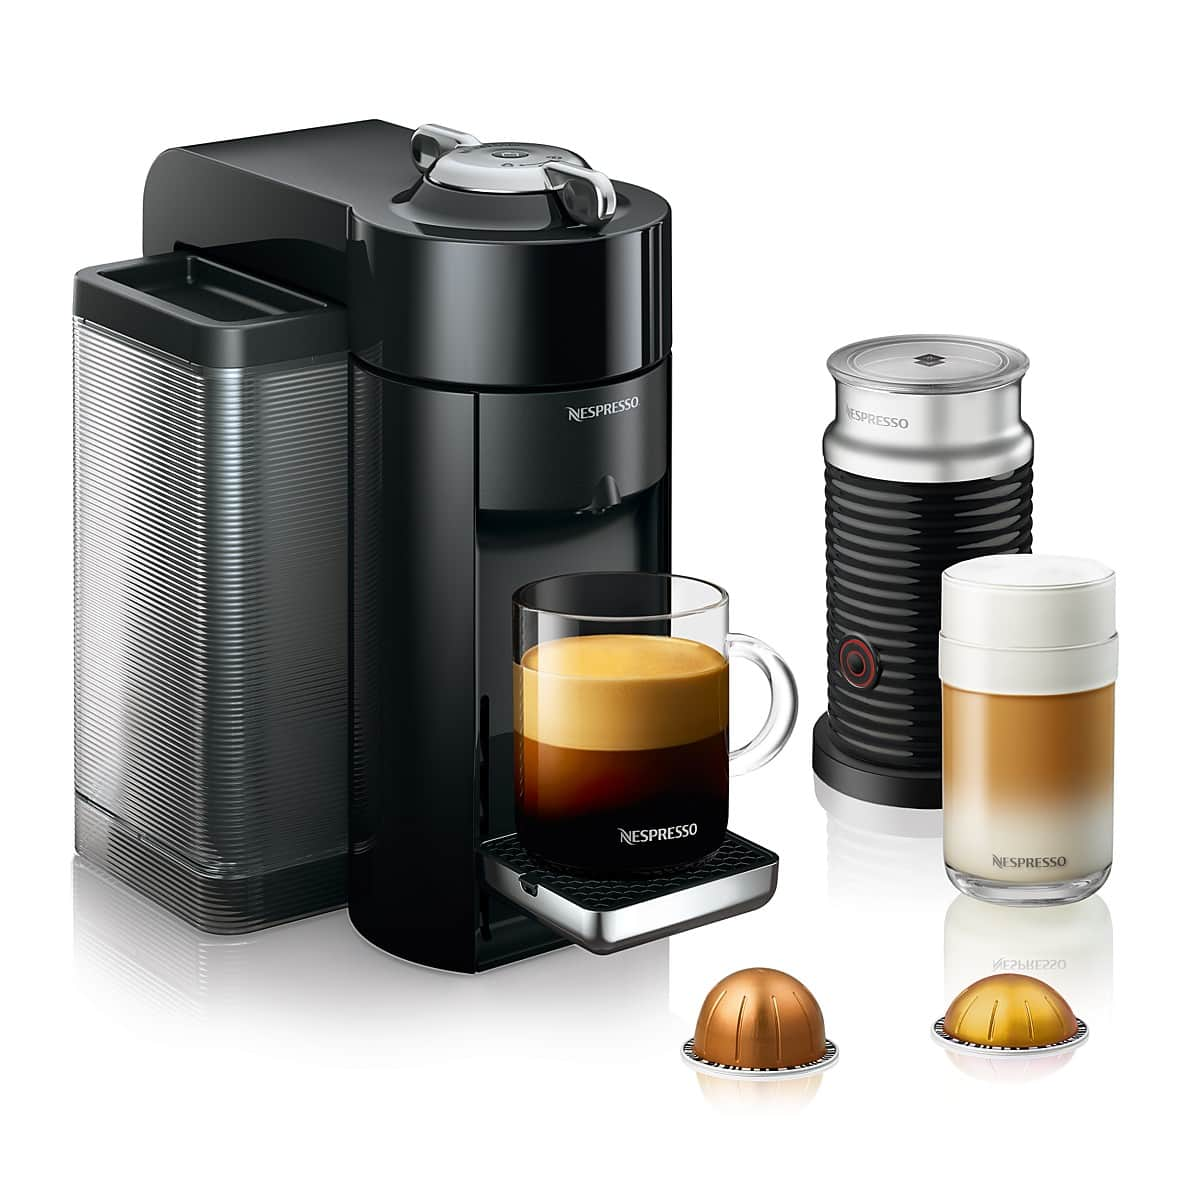 Nespresso Expresso Maker Vertuoline Evoluo Bundle by De'Longhi 70% OFF REG. $475 now $140